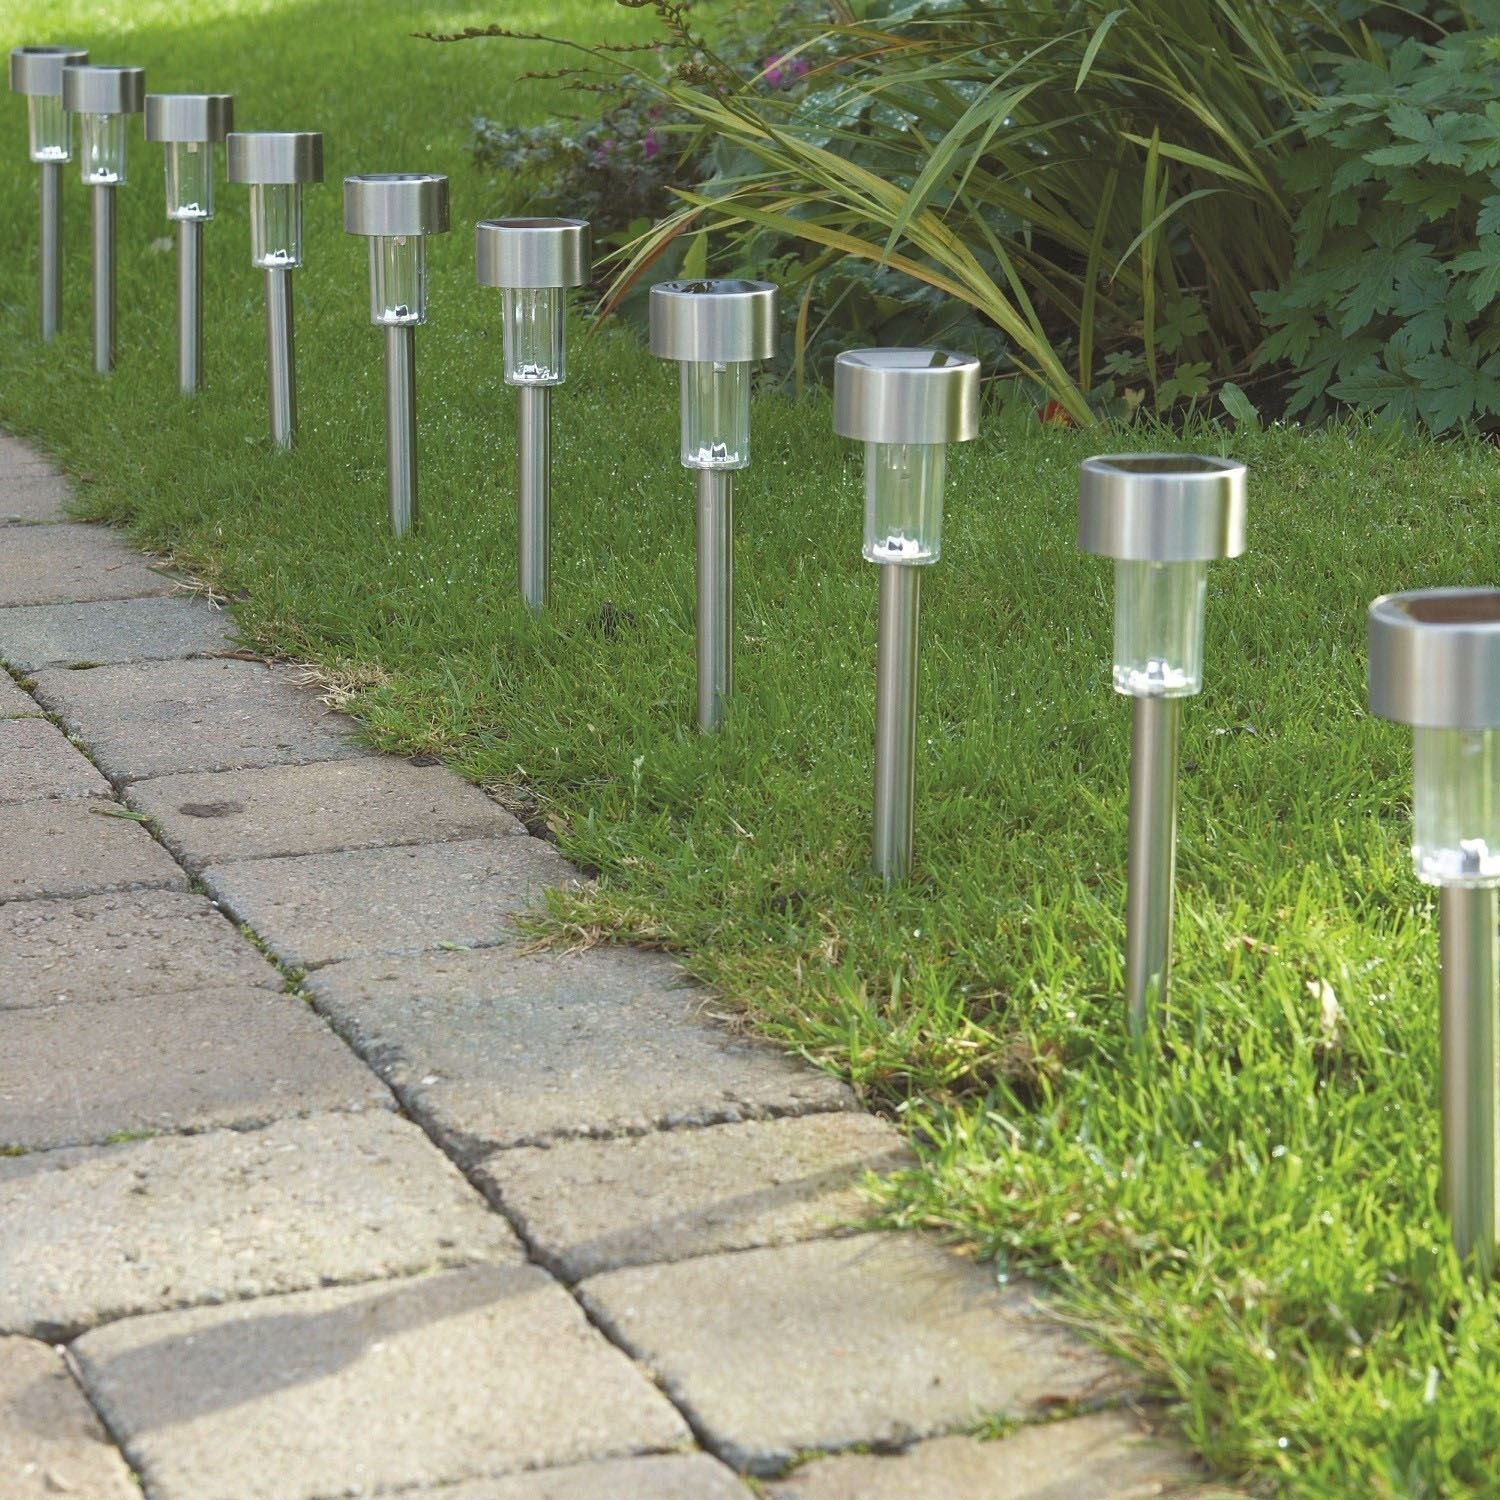 TUTU TECH Solar Light Outdoor [10 Pack] Landscape Path Lights, Solar Powered Pathway Light, Garden Outdoor, Stainless Steel Landscape Lighting for Lawn Patio Yard Walkway Driveway-Bright White by TUTU TECH (Image #7)